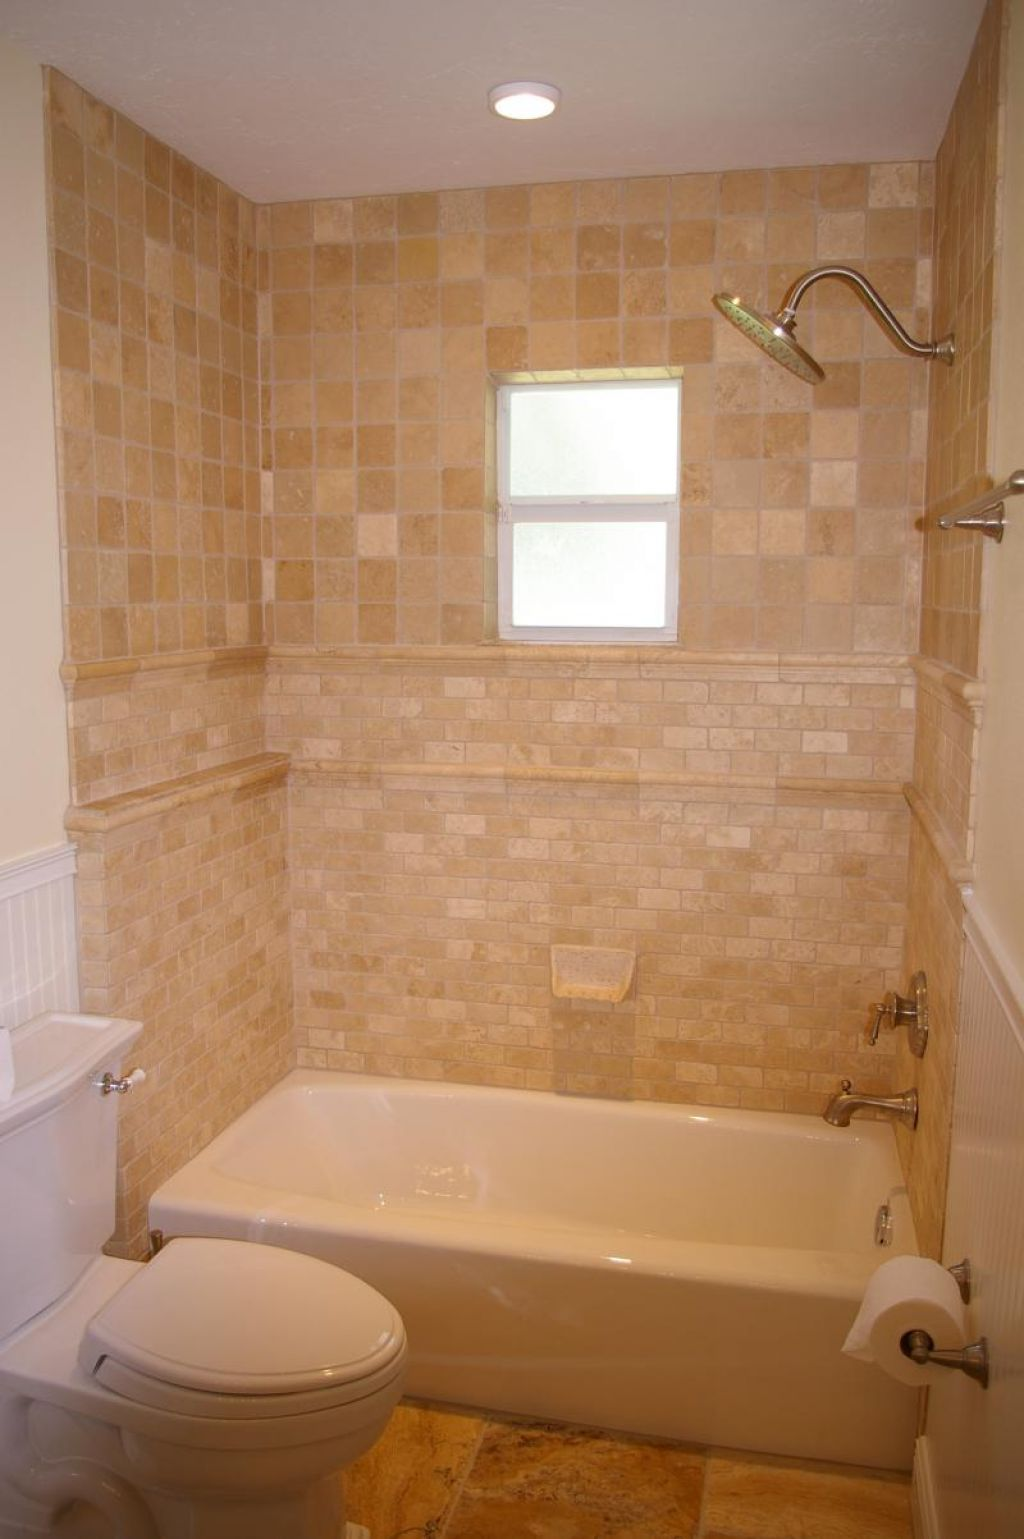 30 shower tile ideas on a budget for Bathroom wall